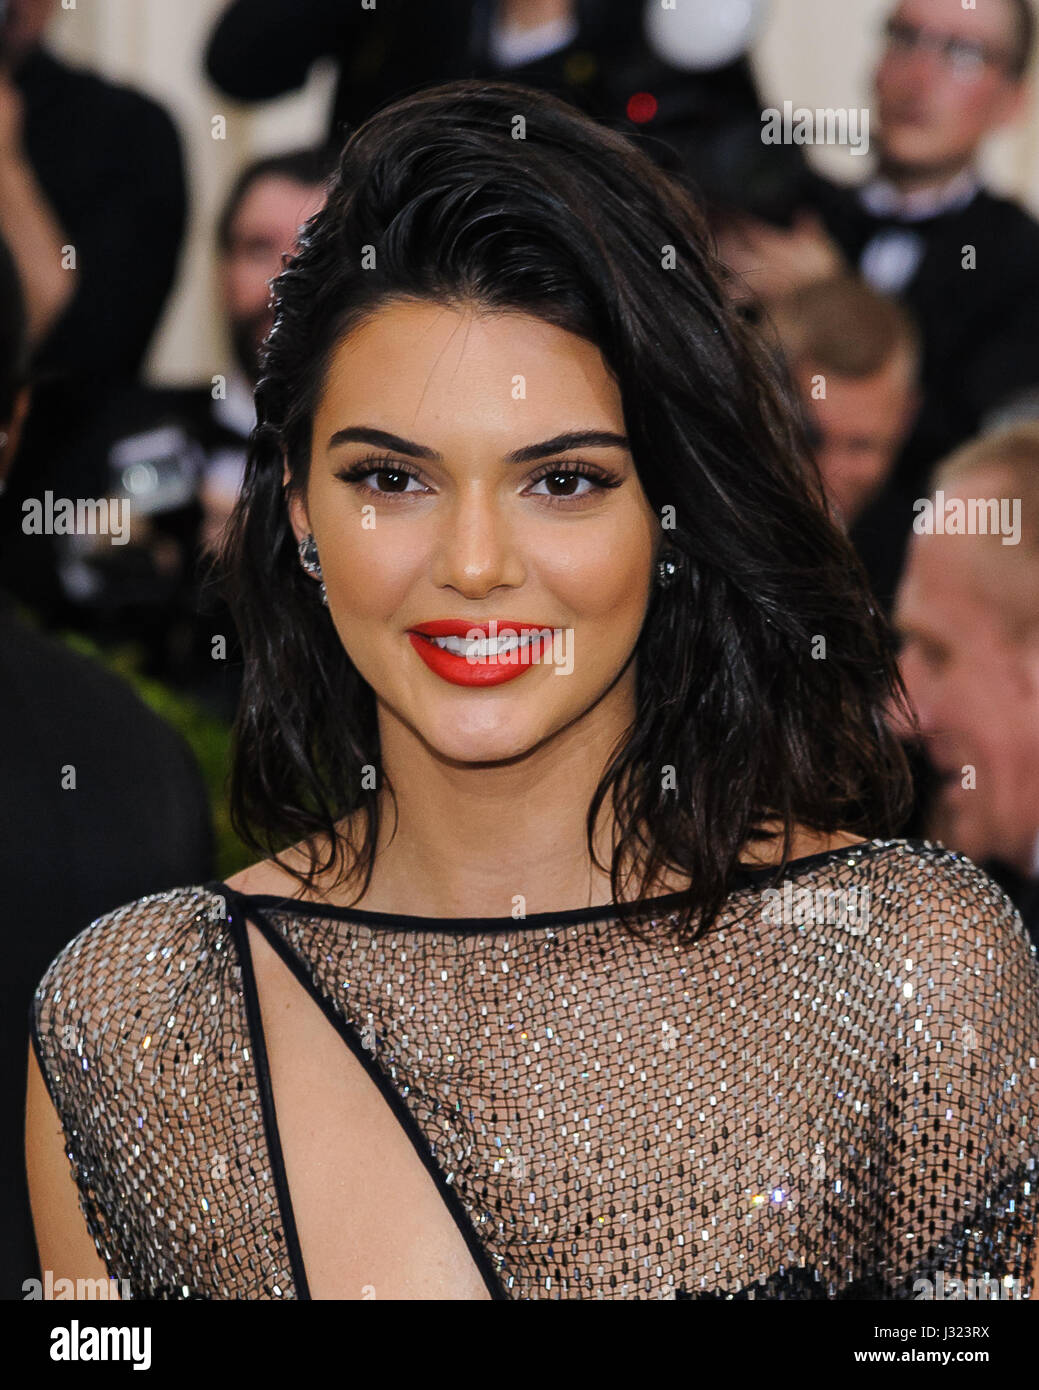 New York, NY, USA. 1er mai 2017. Kendall Jenner. 2017 Metropolitan Museum of Art Costume Institute Gala bénéfice Banque D'Images